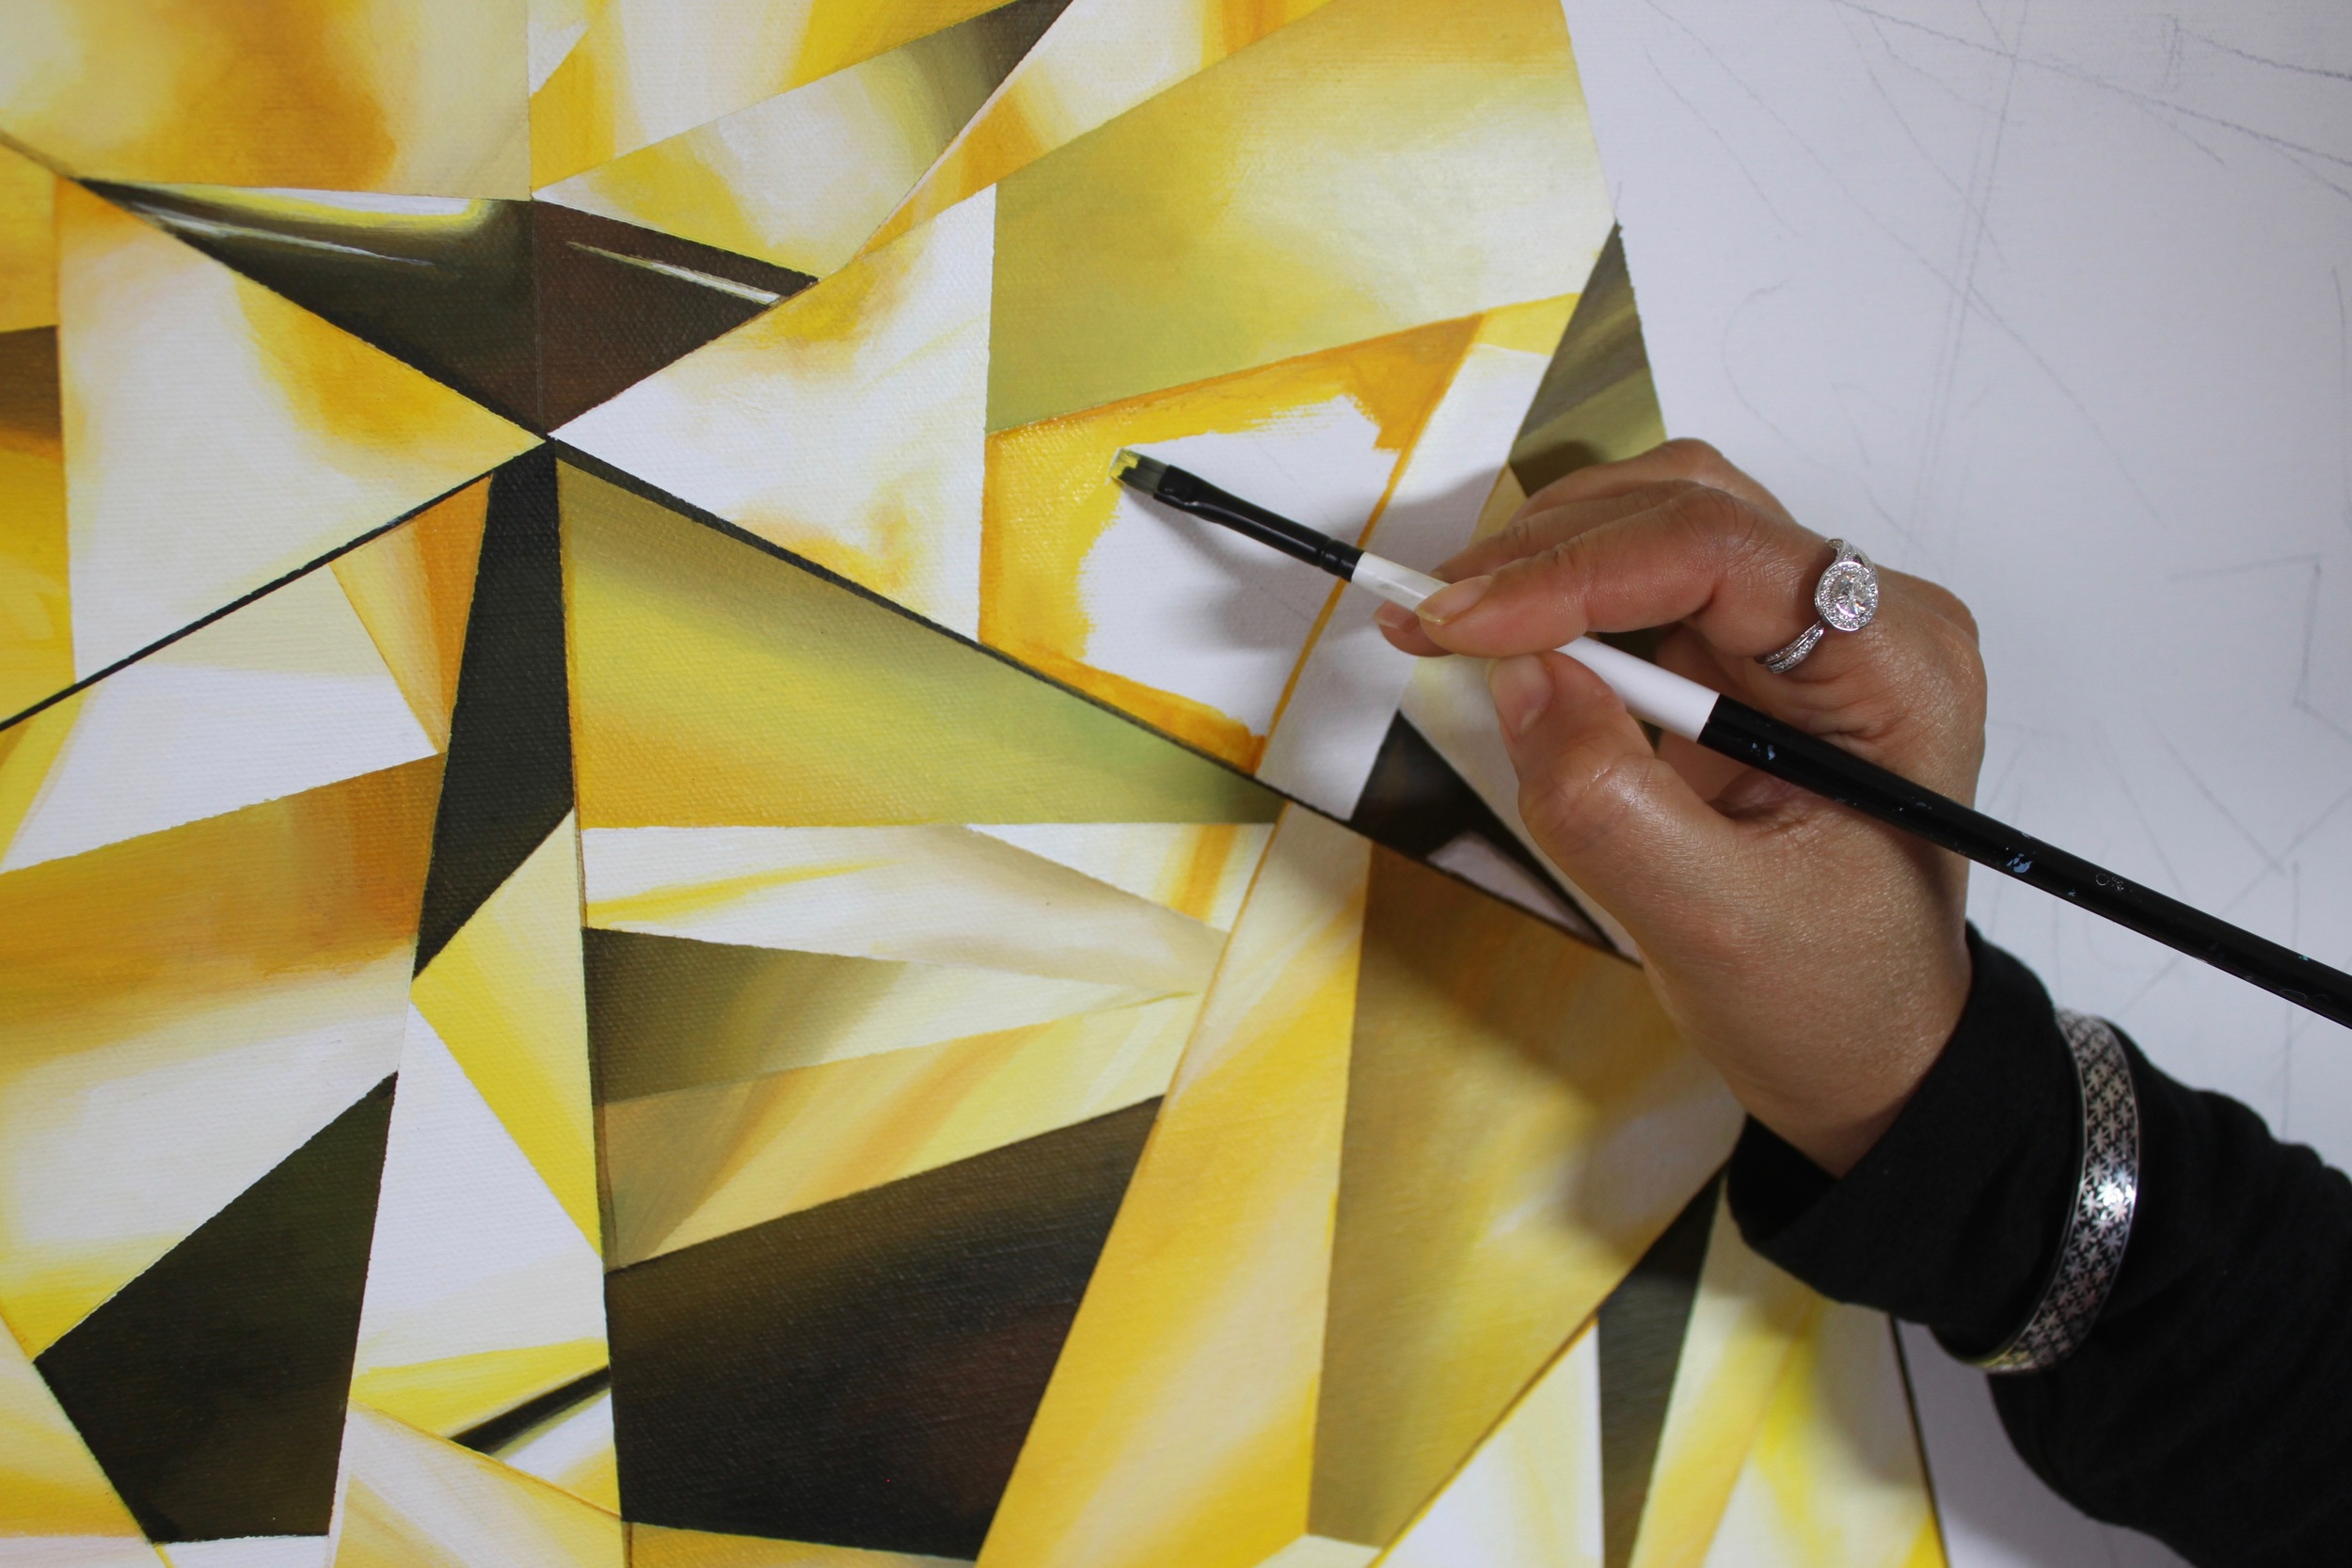 How many shades of yellow can you see? I work my brush in layers of color, slowly developing the nuanced coloration that a diamond has. Making of 'The Portrait of Luminosity' - Portrait of an Oval Cut Yellow Diamond. 60 x 48 inches. Acrylic on Canvas. ©Reena Ahluwalia